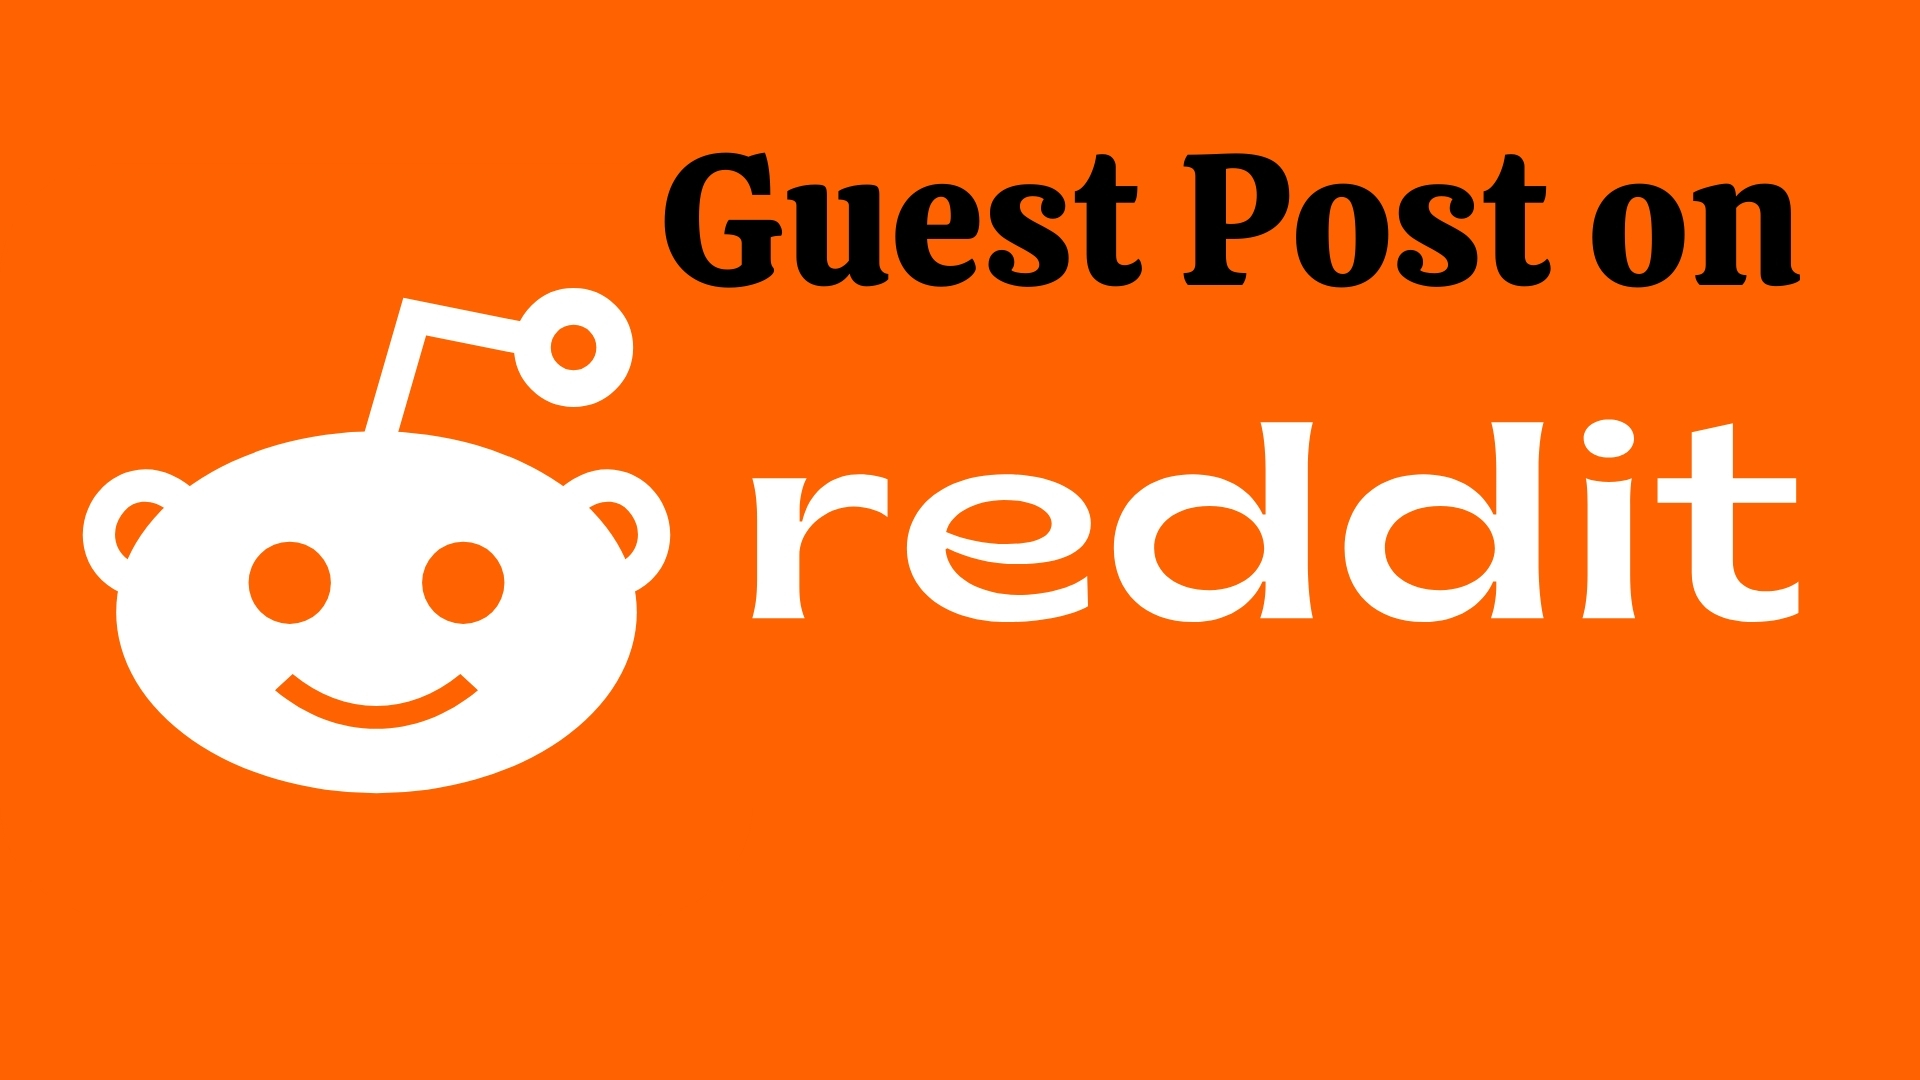 Get 5 HQ reddit guest post to promote your website